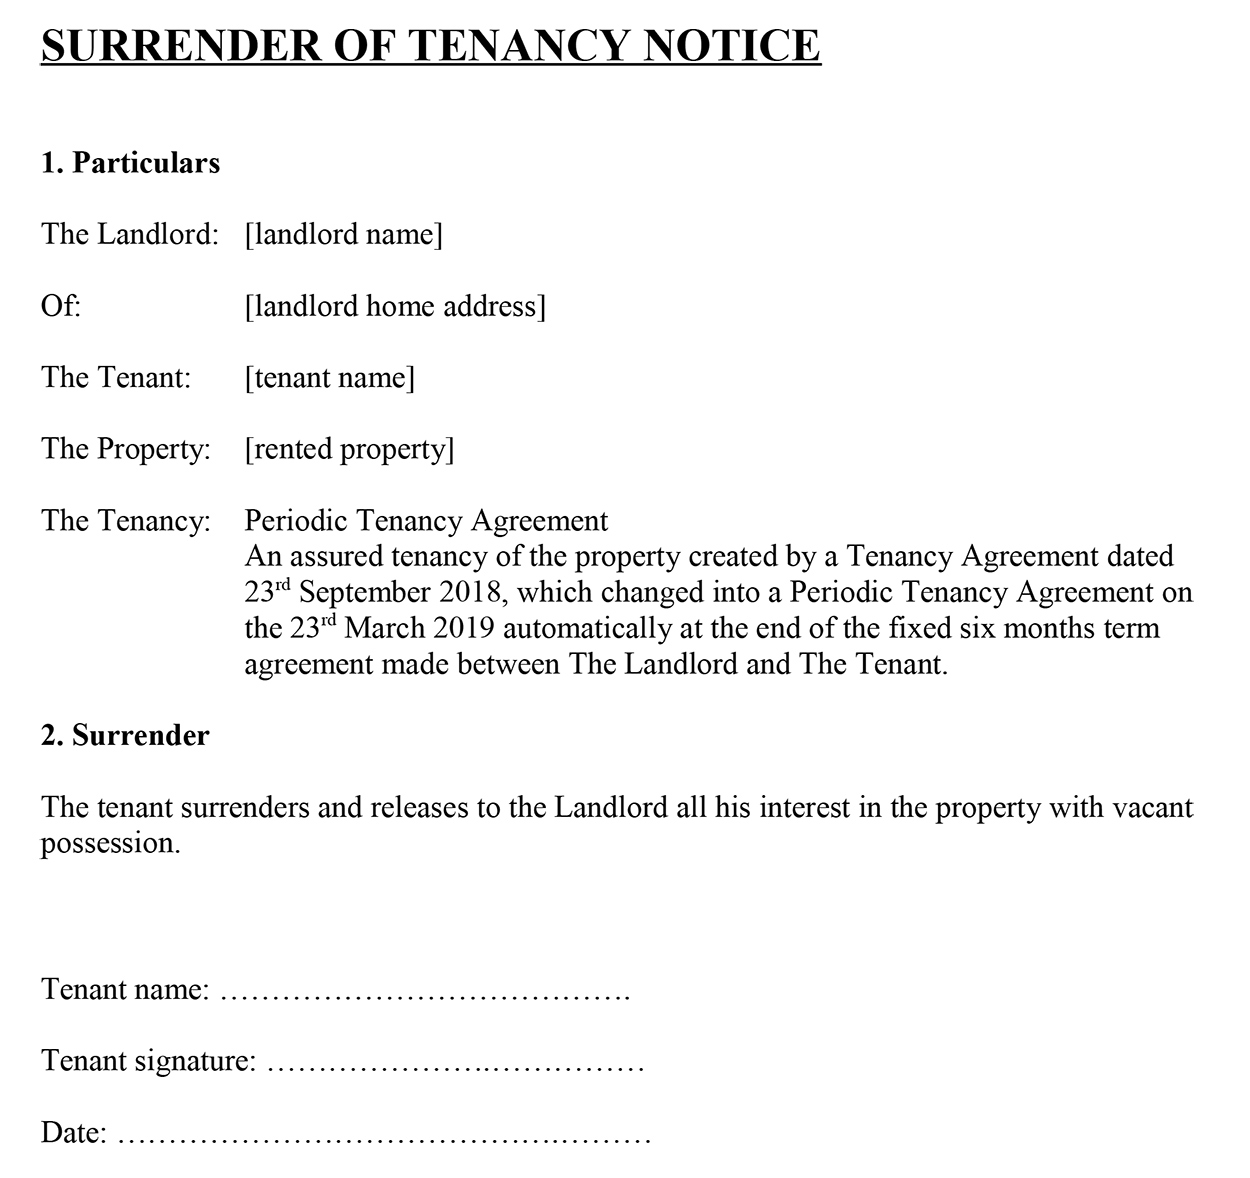 Surrender Of Tenancy' Notice For Tenants